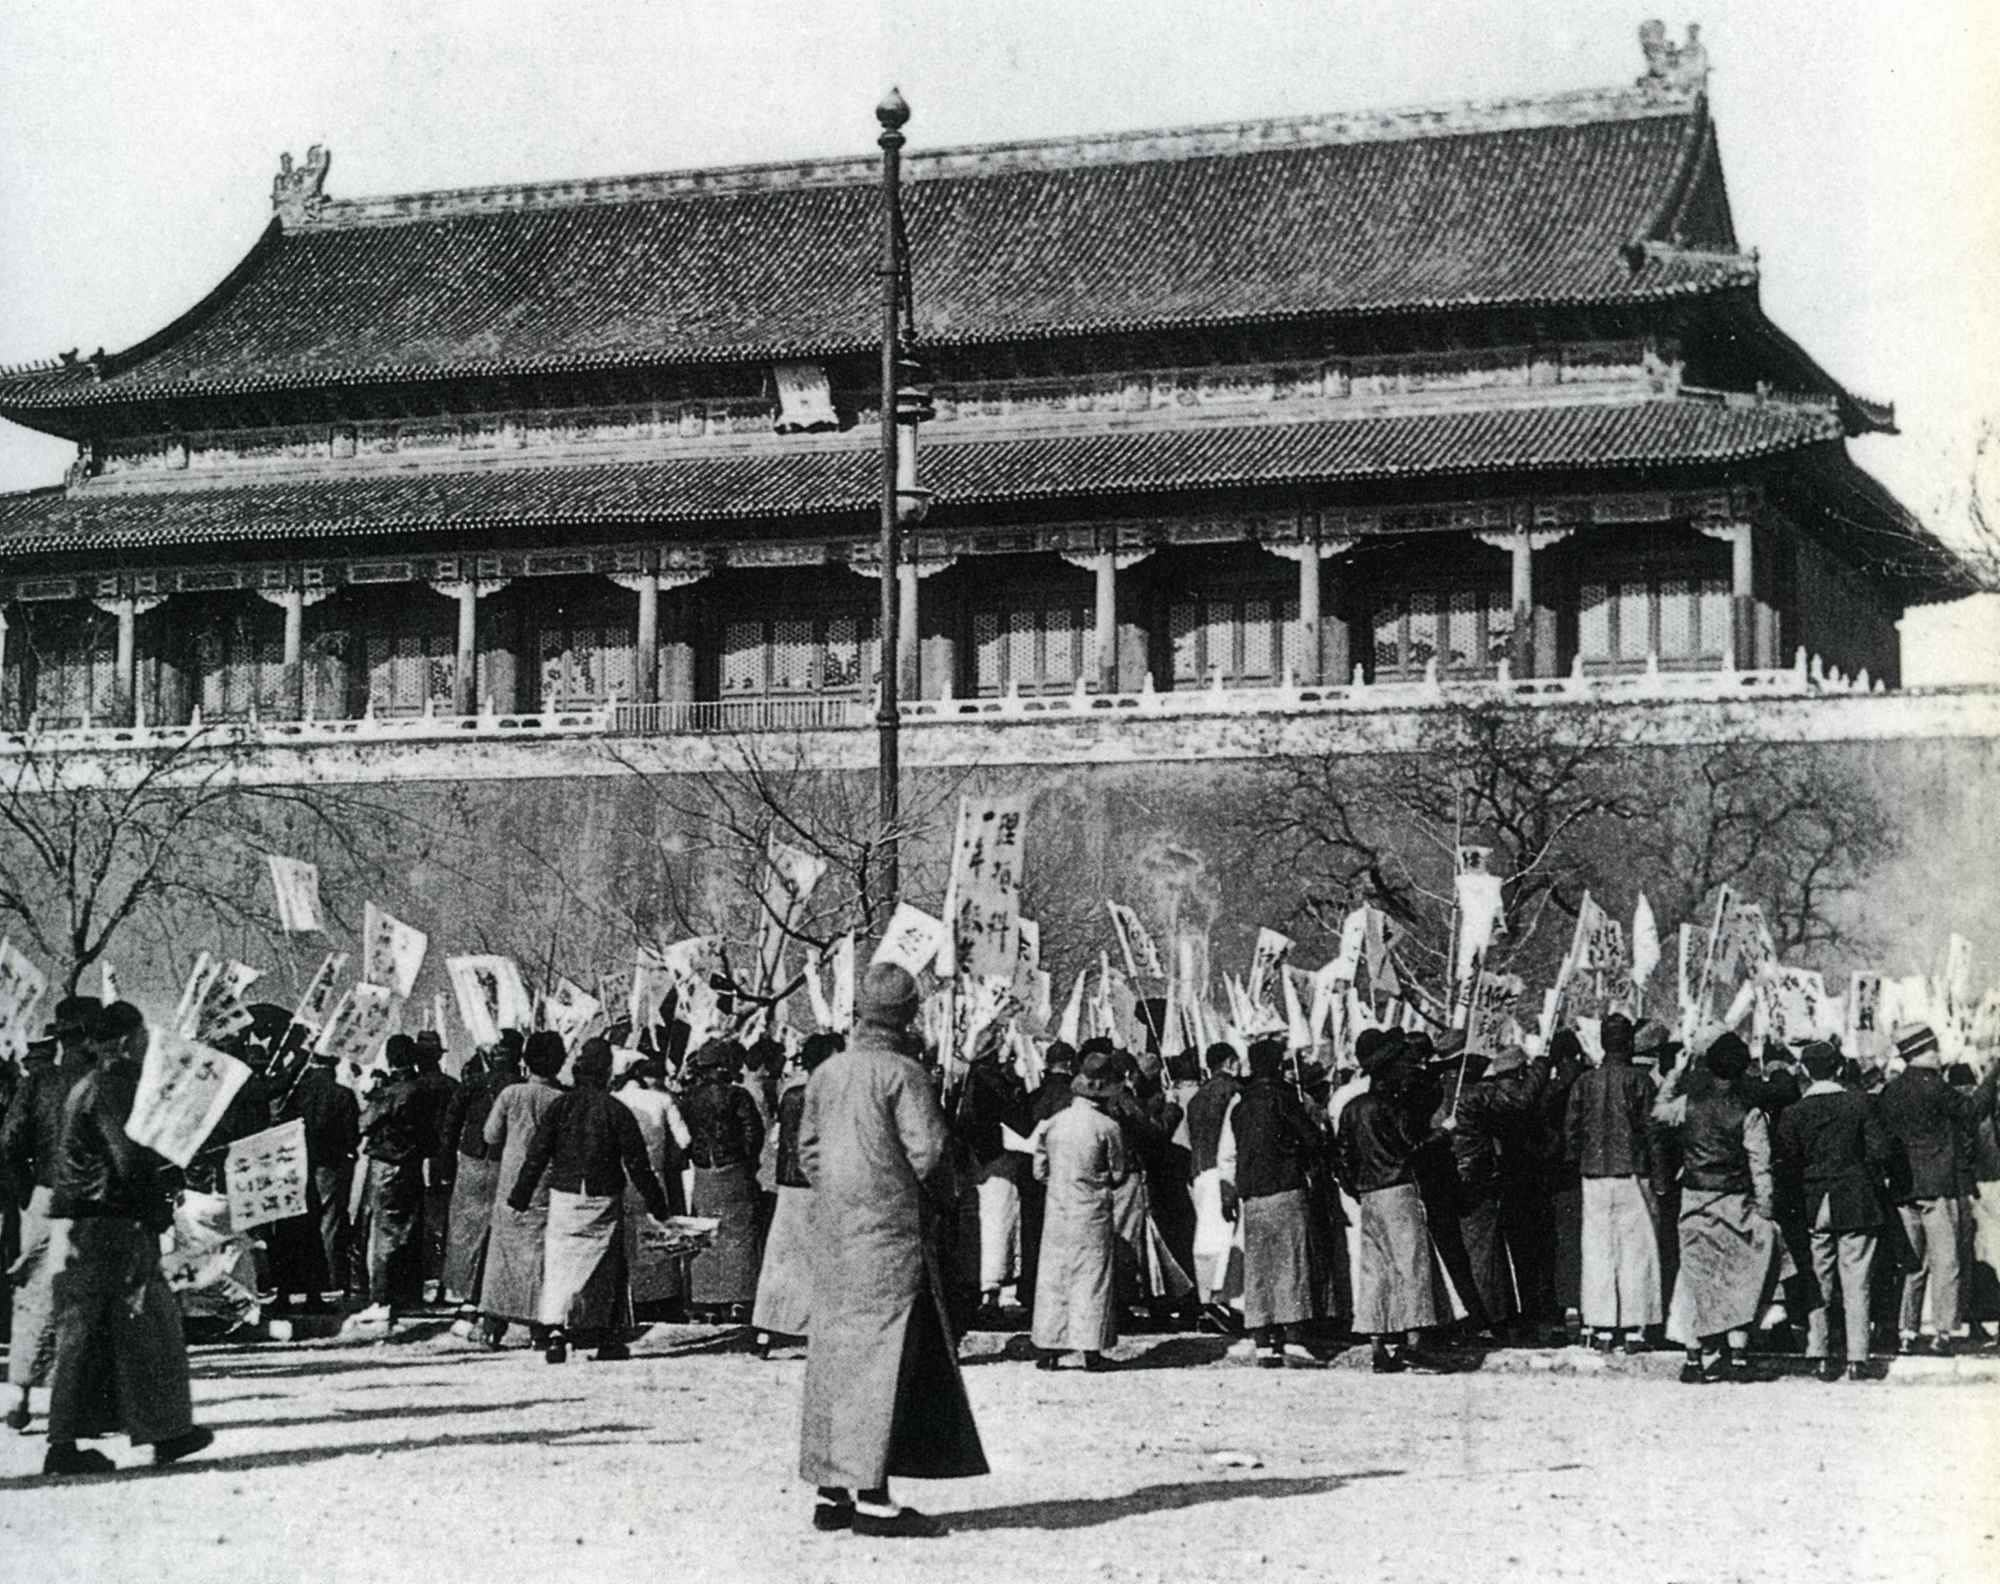 2 compare the 1911 revolution and the may fourth movement in terms of their impact on china s histor This issue of east asian history has the fourth annual morrison lecture on the new culture movement in china was delivered in the revolution of 1911.